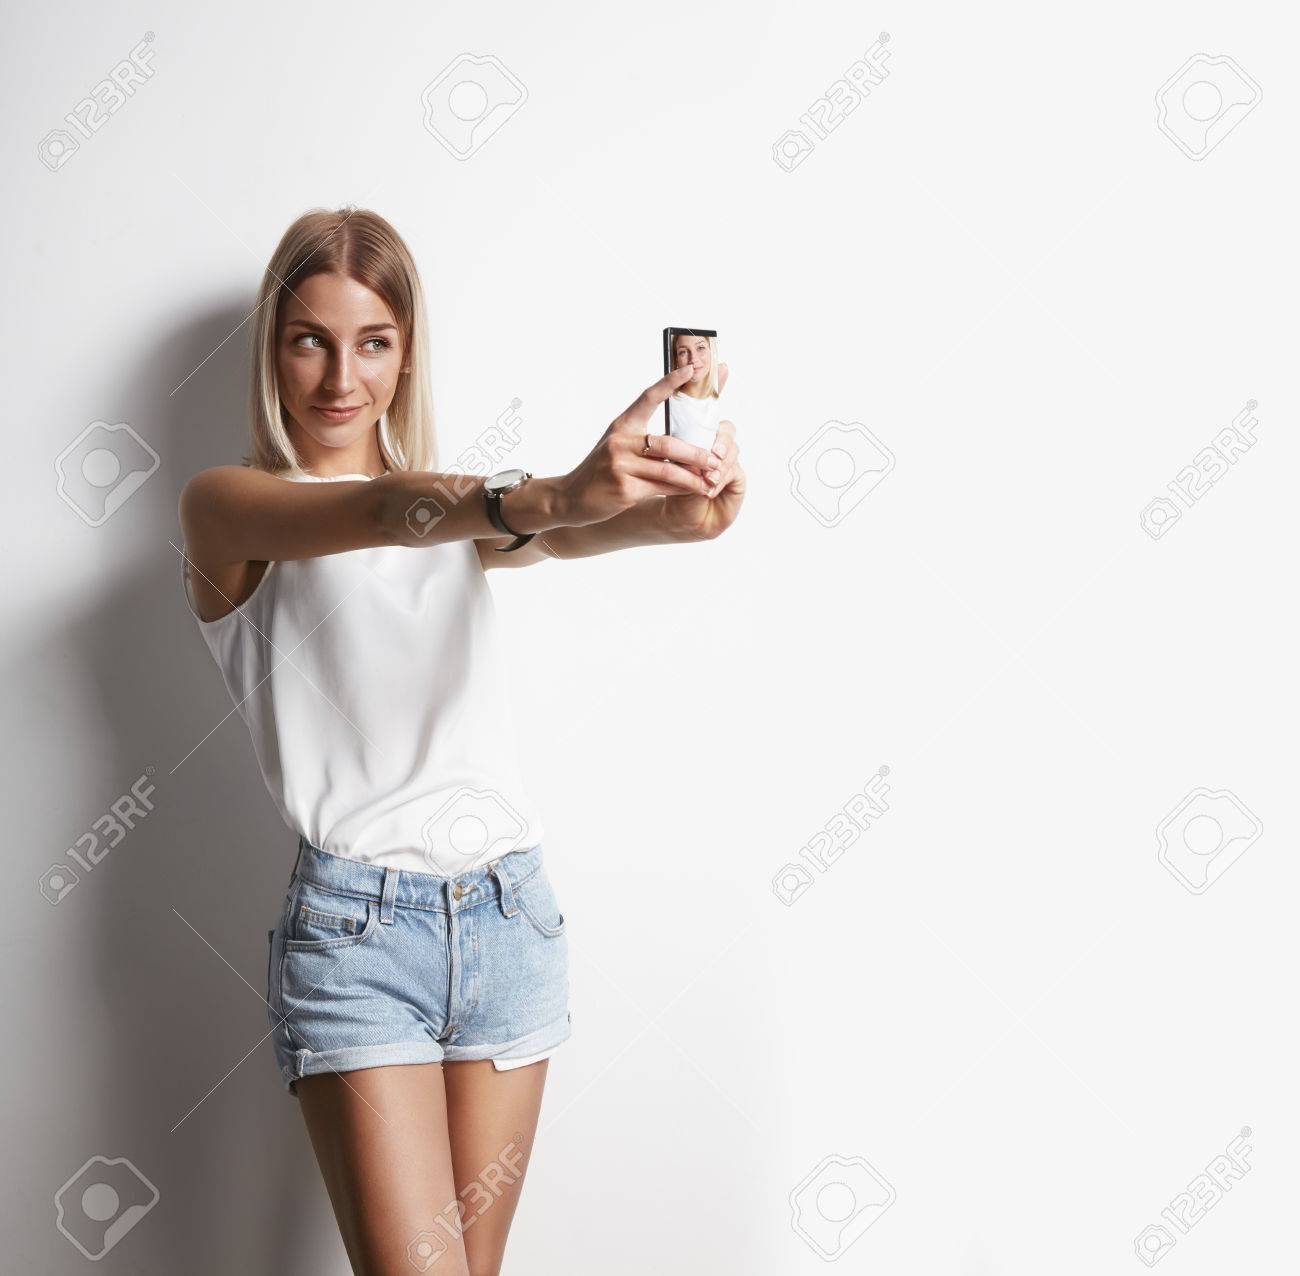 girl making selfie with a mobile phone - 34676855